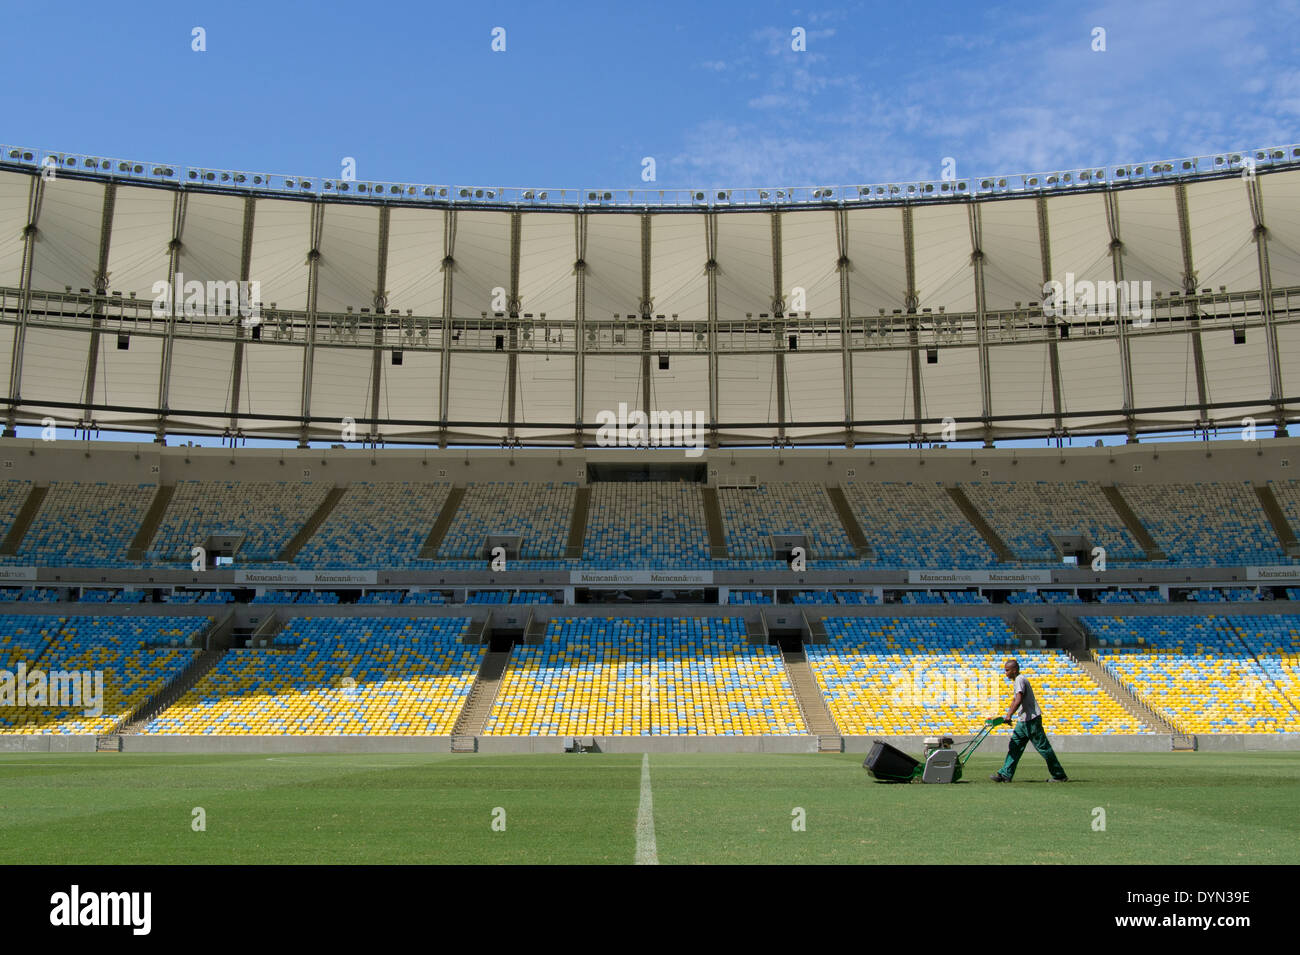 A groundsman prepares the pitch at Maracana stadium in Rio de Janeiro, Brazil, staging the soccer FIFA World Cup Final 2014. - Stock Image